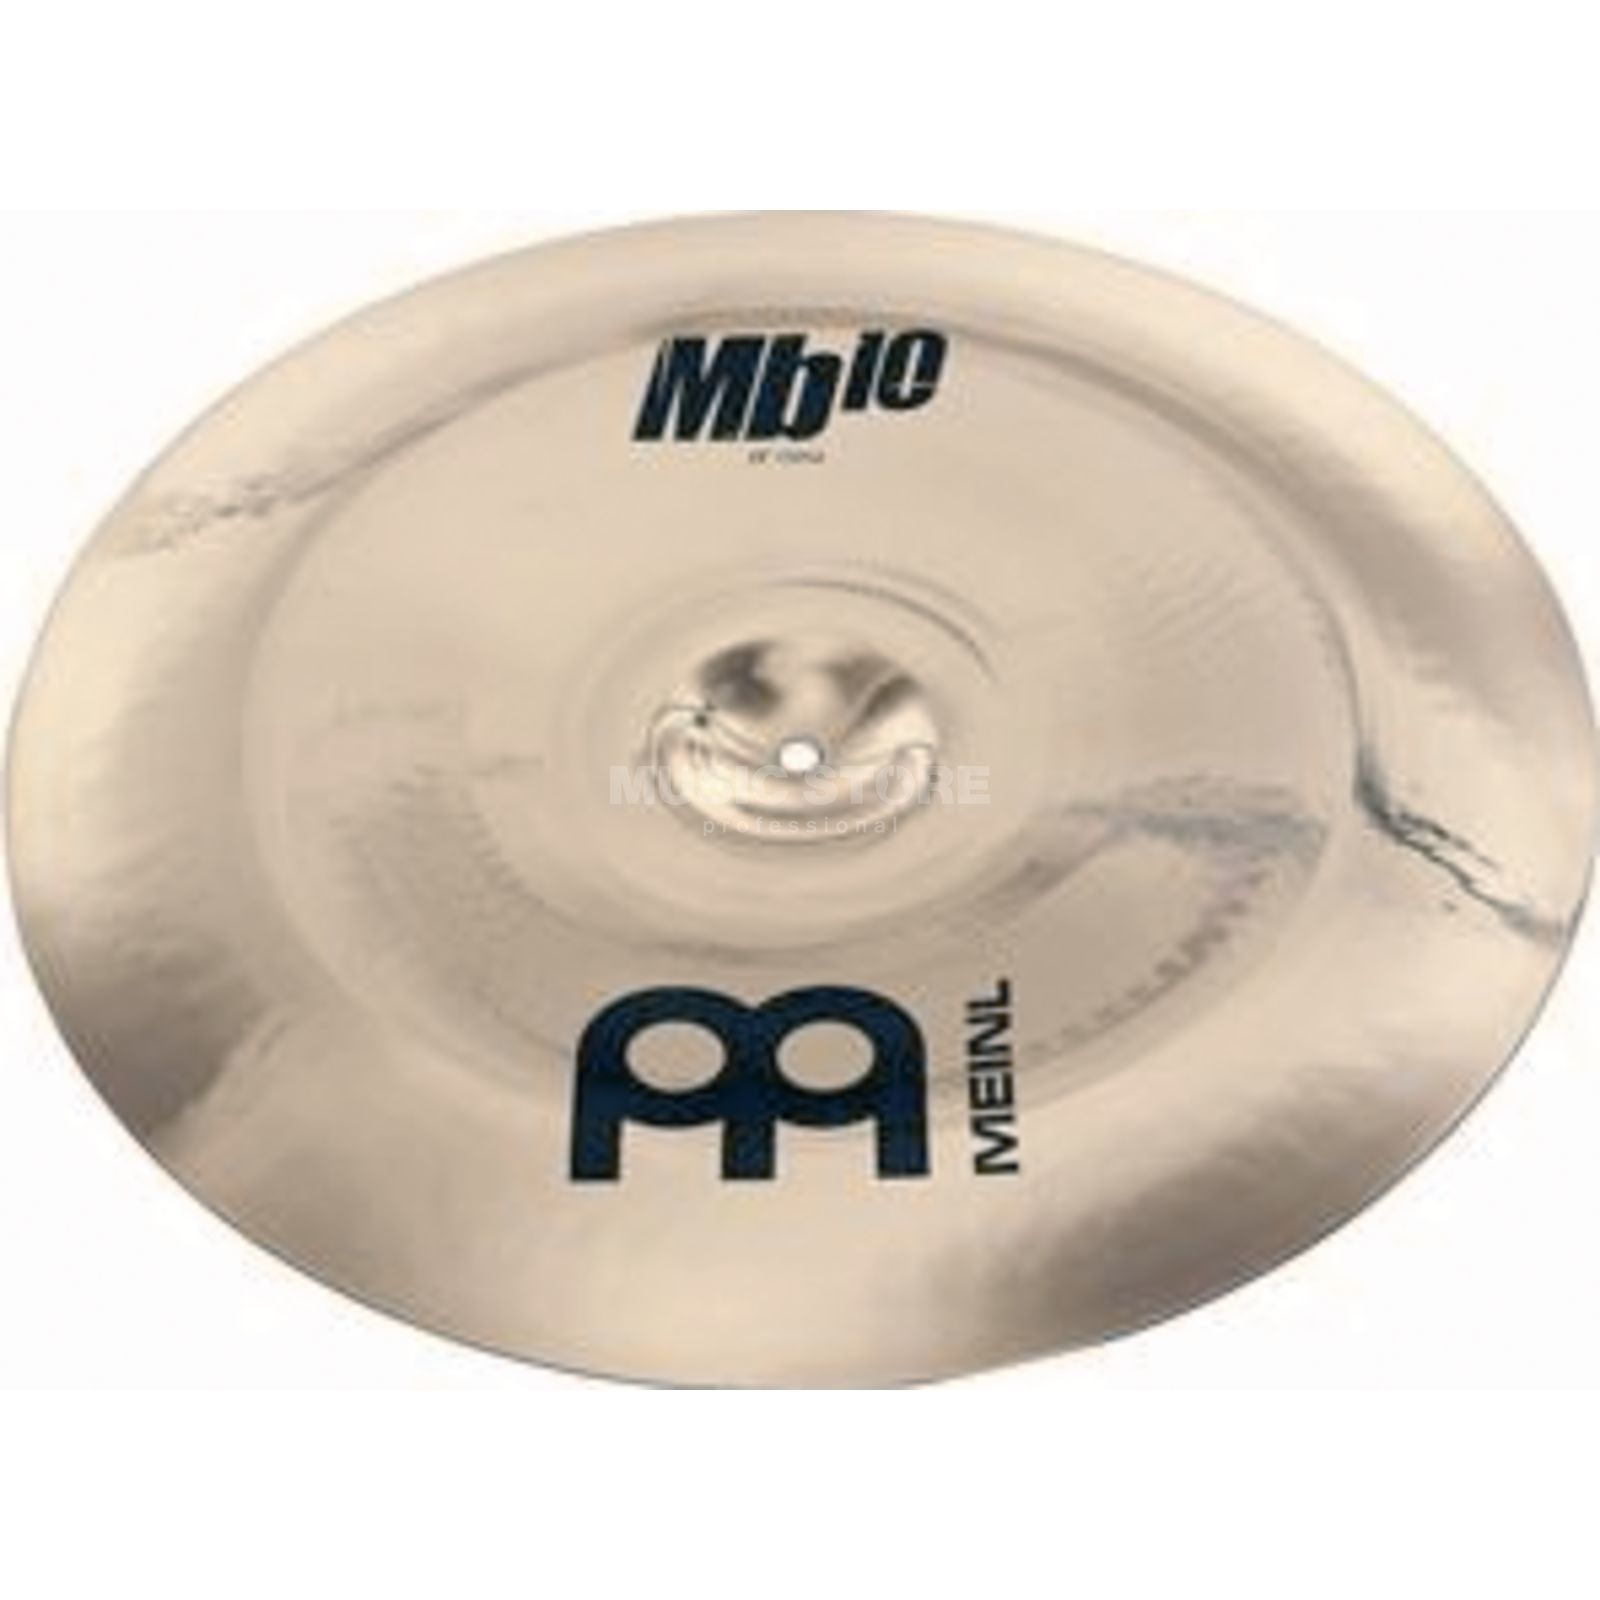 "Meinl MB10 China 17"" MB10-17CH-B, Brilliant Finish Zdjęcie produktu"